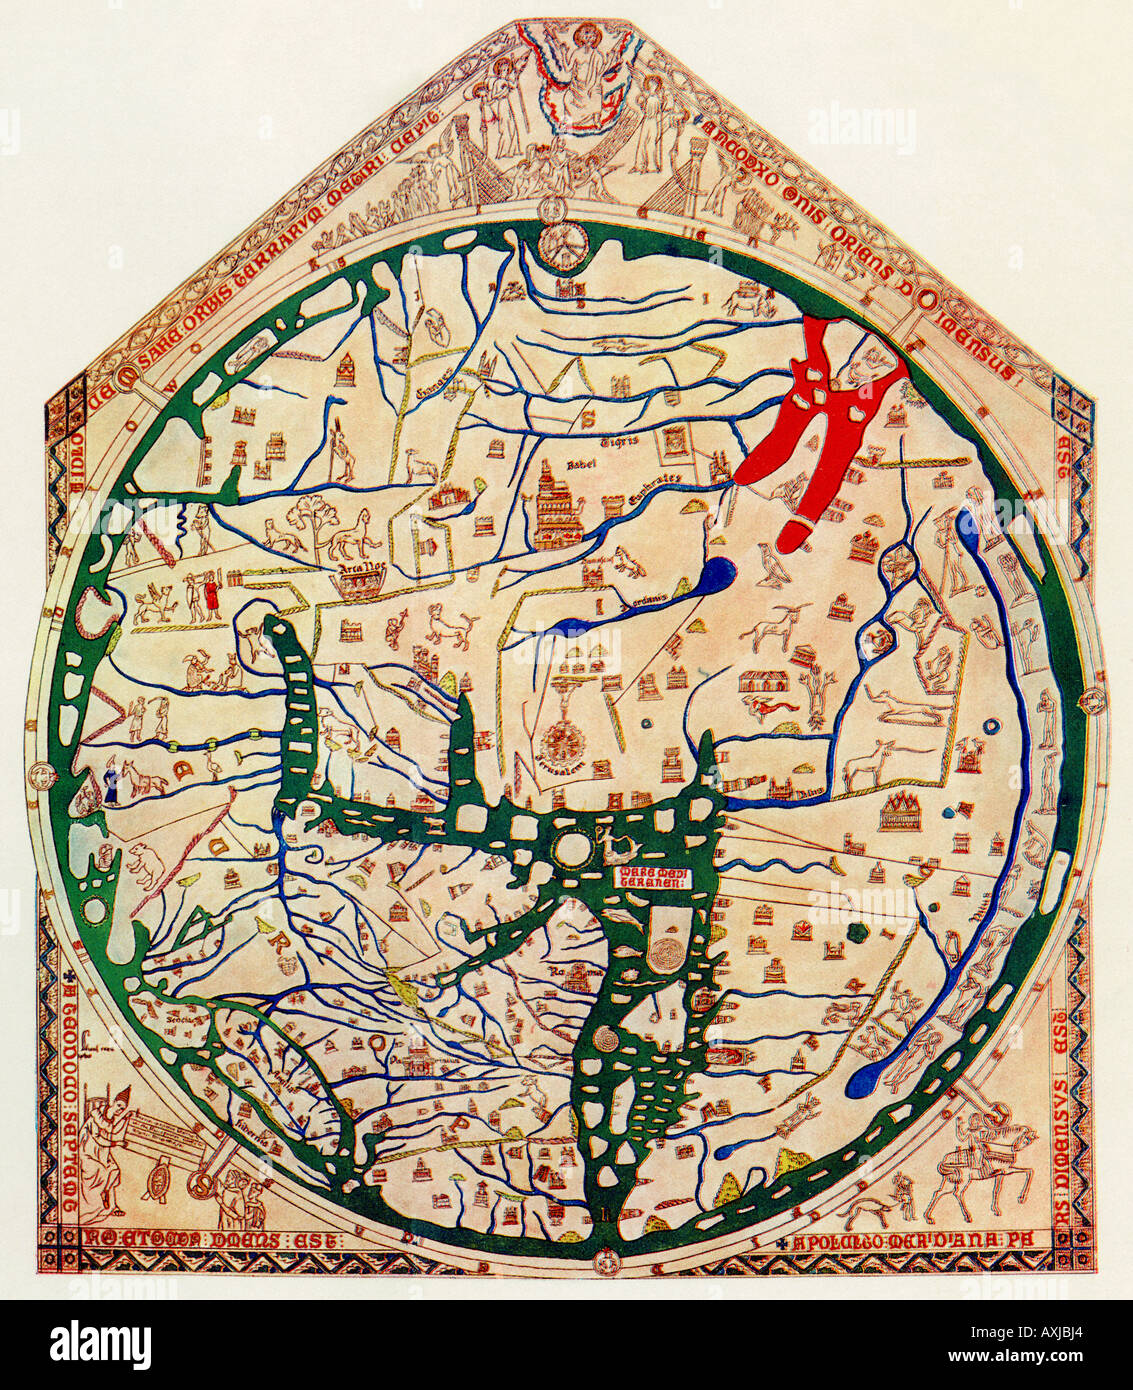 Hereford mappa mundi of 1280 showing jerusalem at the center europe hereford mappa mundi of 1280 showing jerusalem at the center europe is lower left africa is lower right gumiabroncs Choice Image